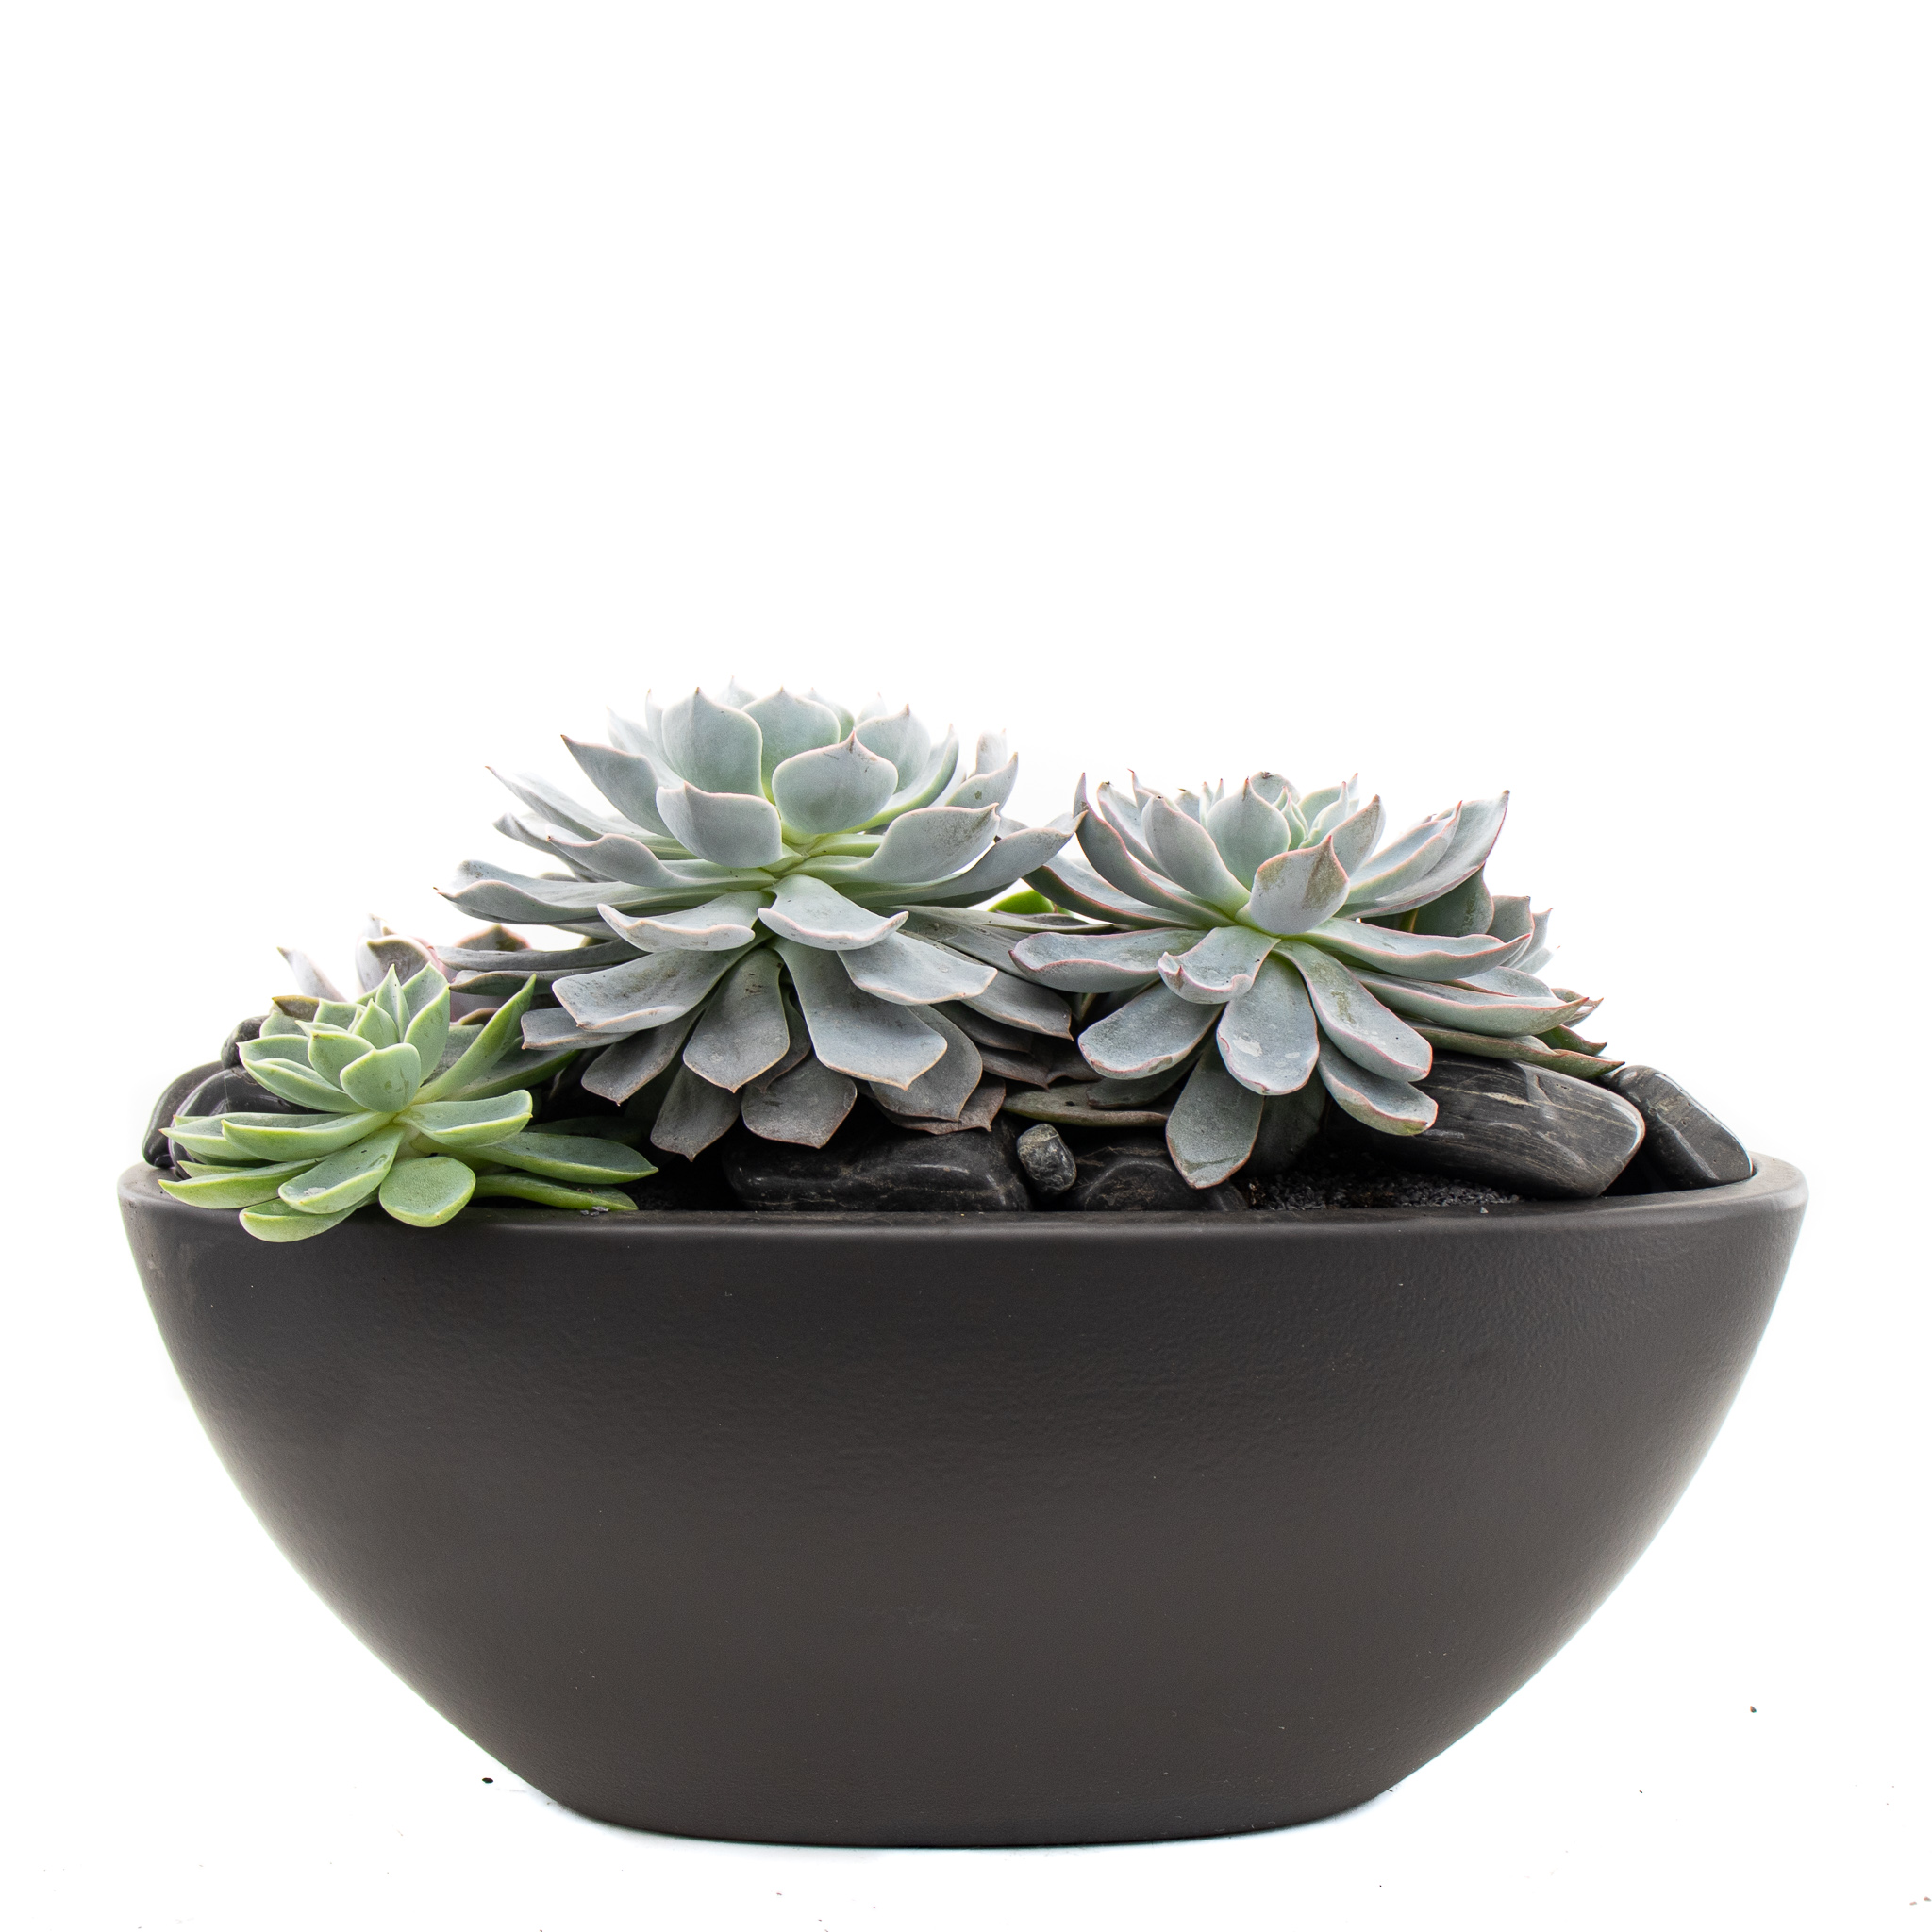 Germany Boat Black with Succulents (Small)